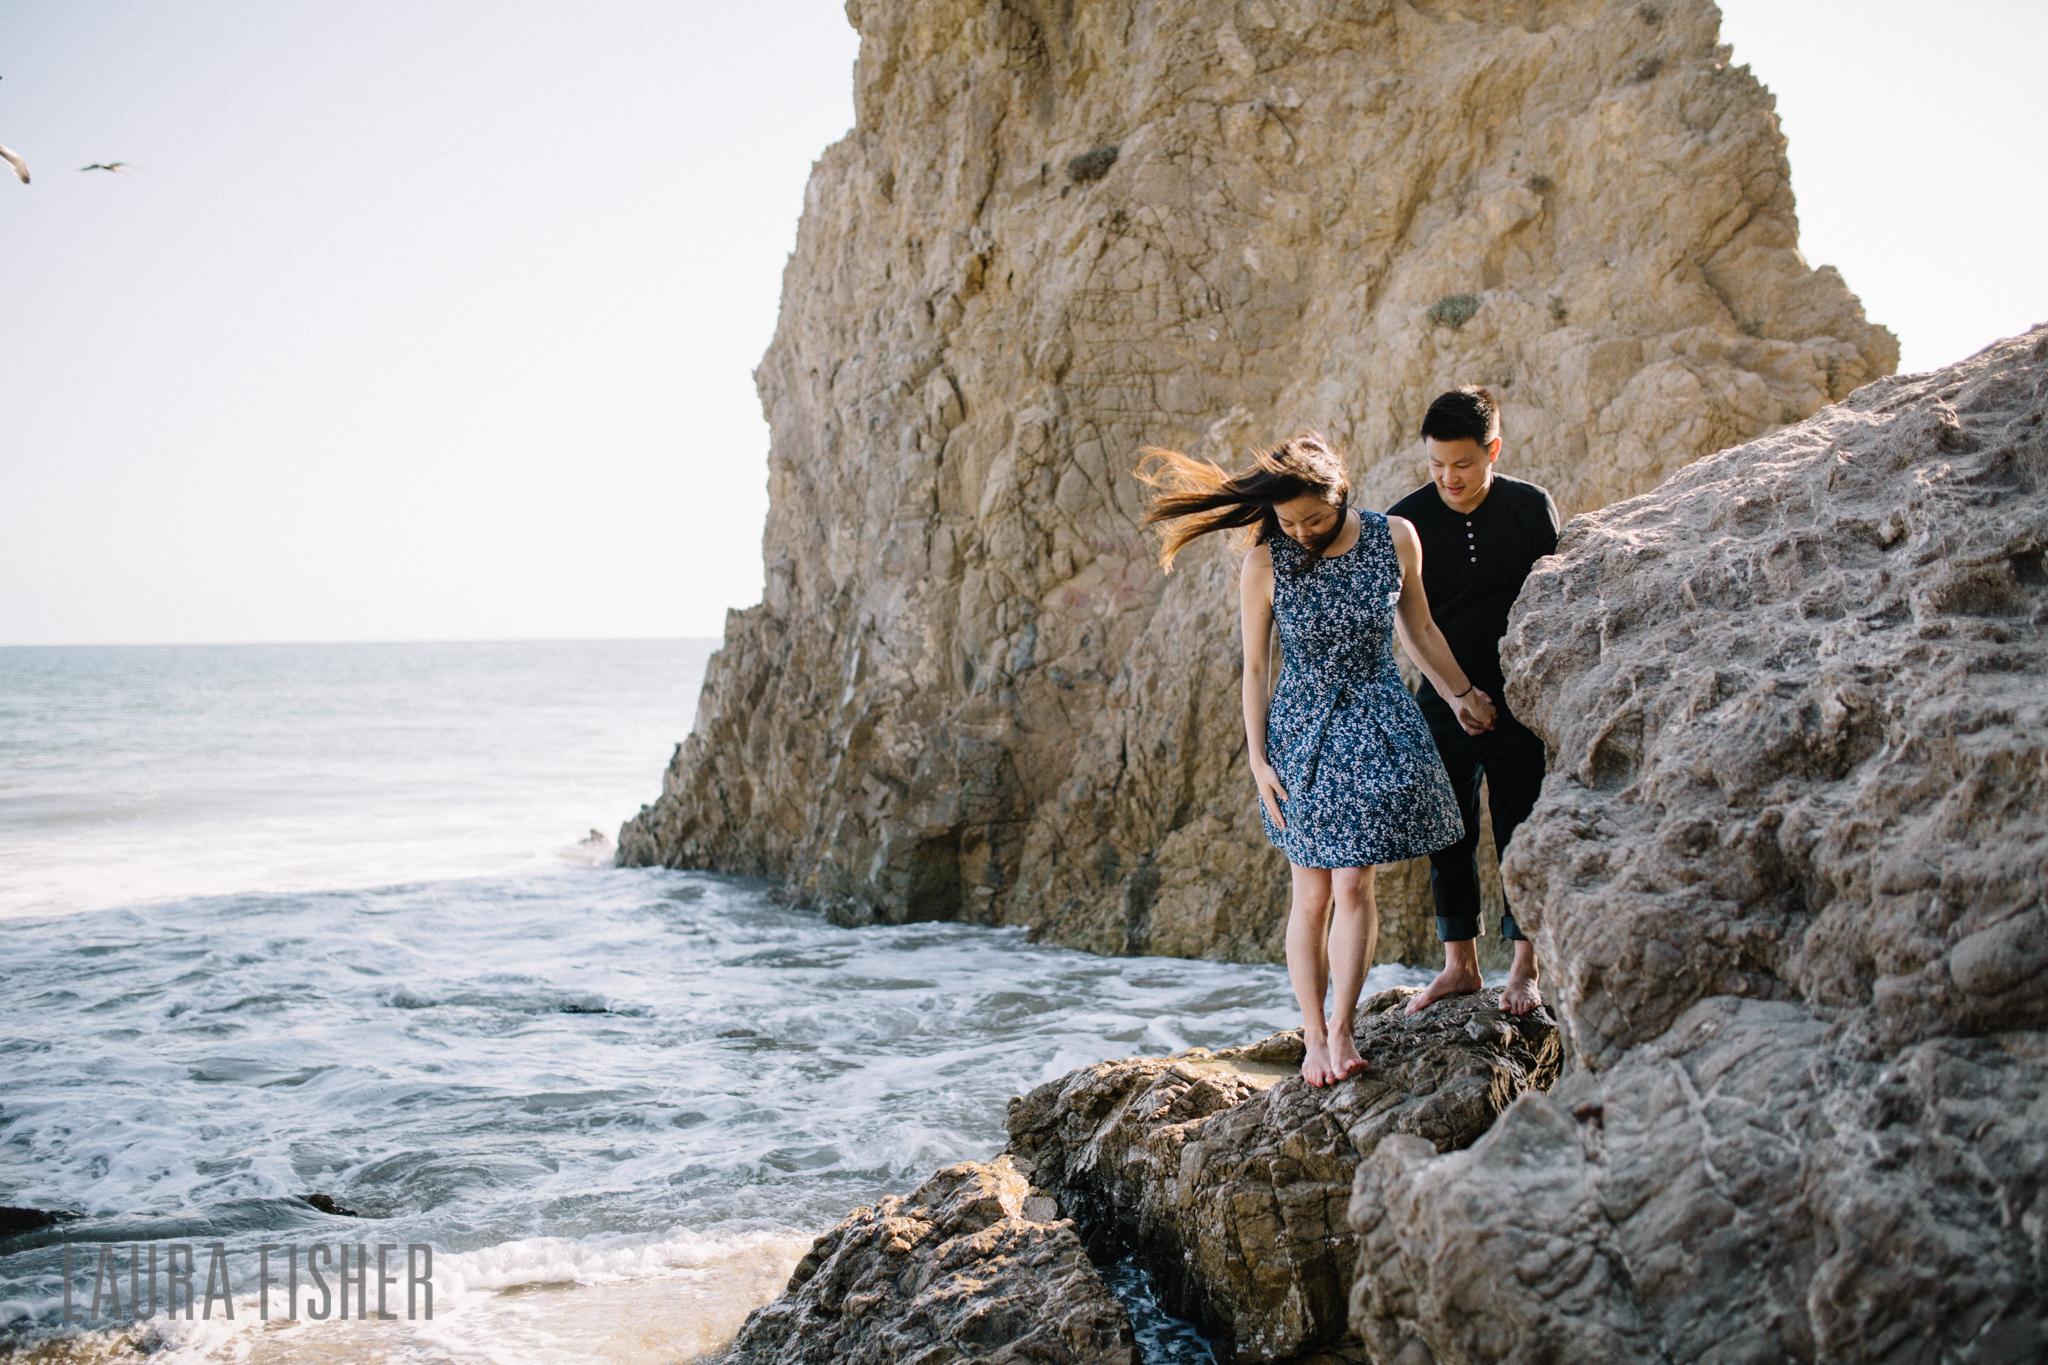 malibu-california-wedding-el-matador-beach-laura-fisher-photography-0007.jpg